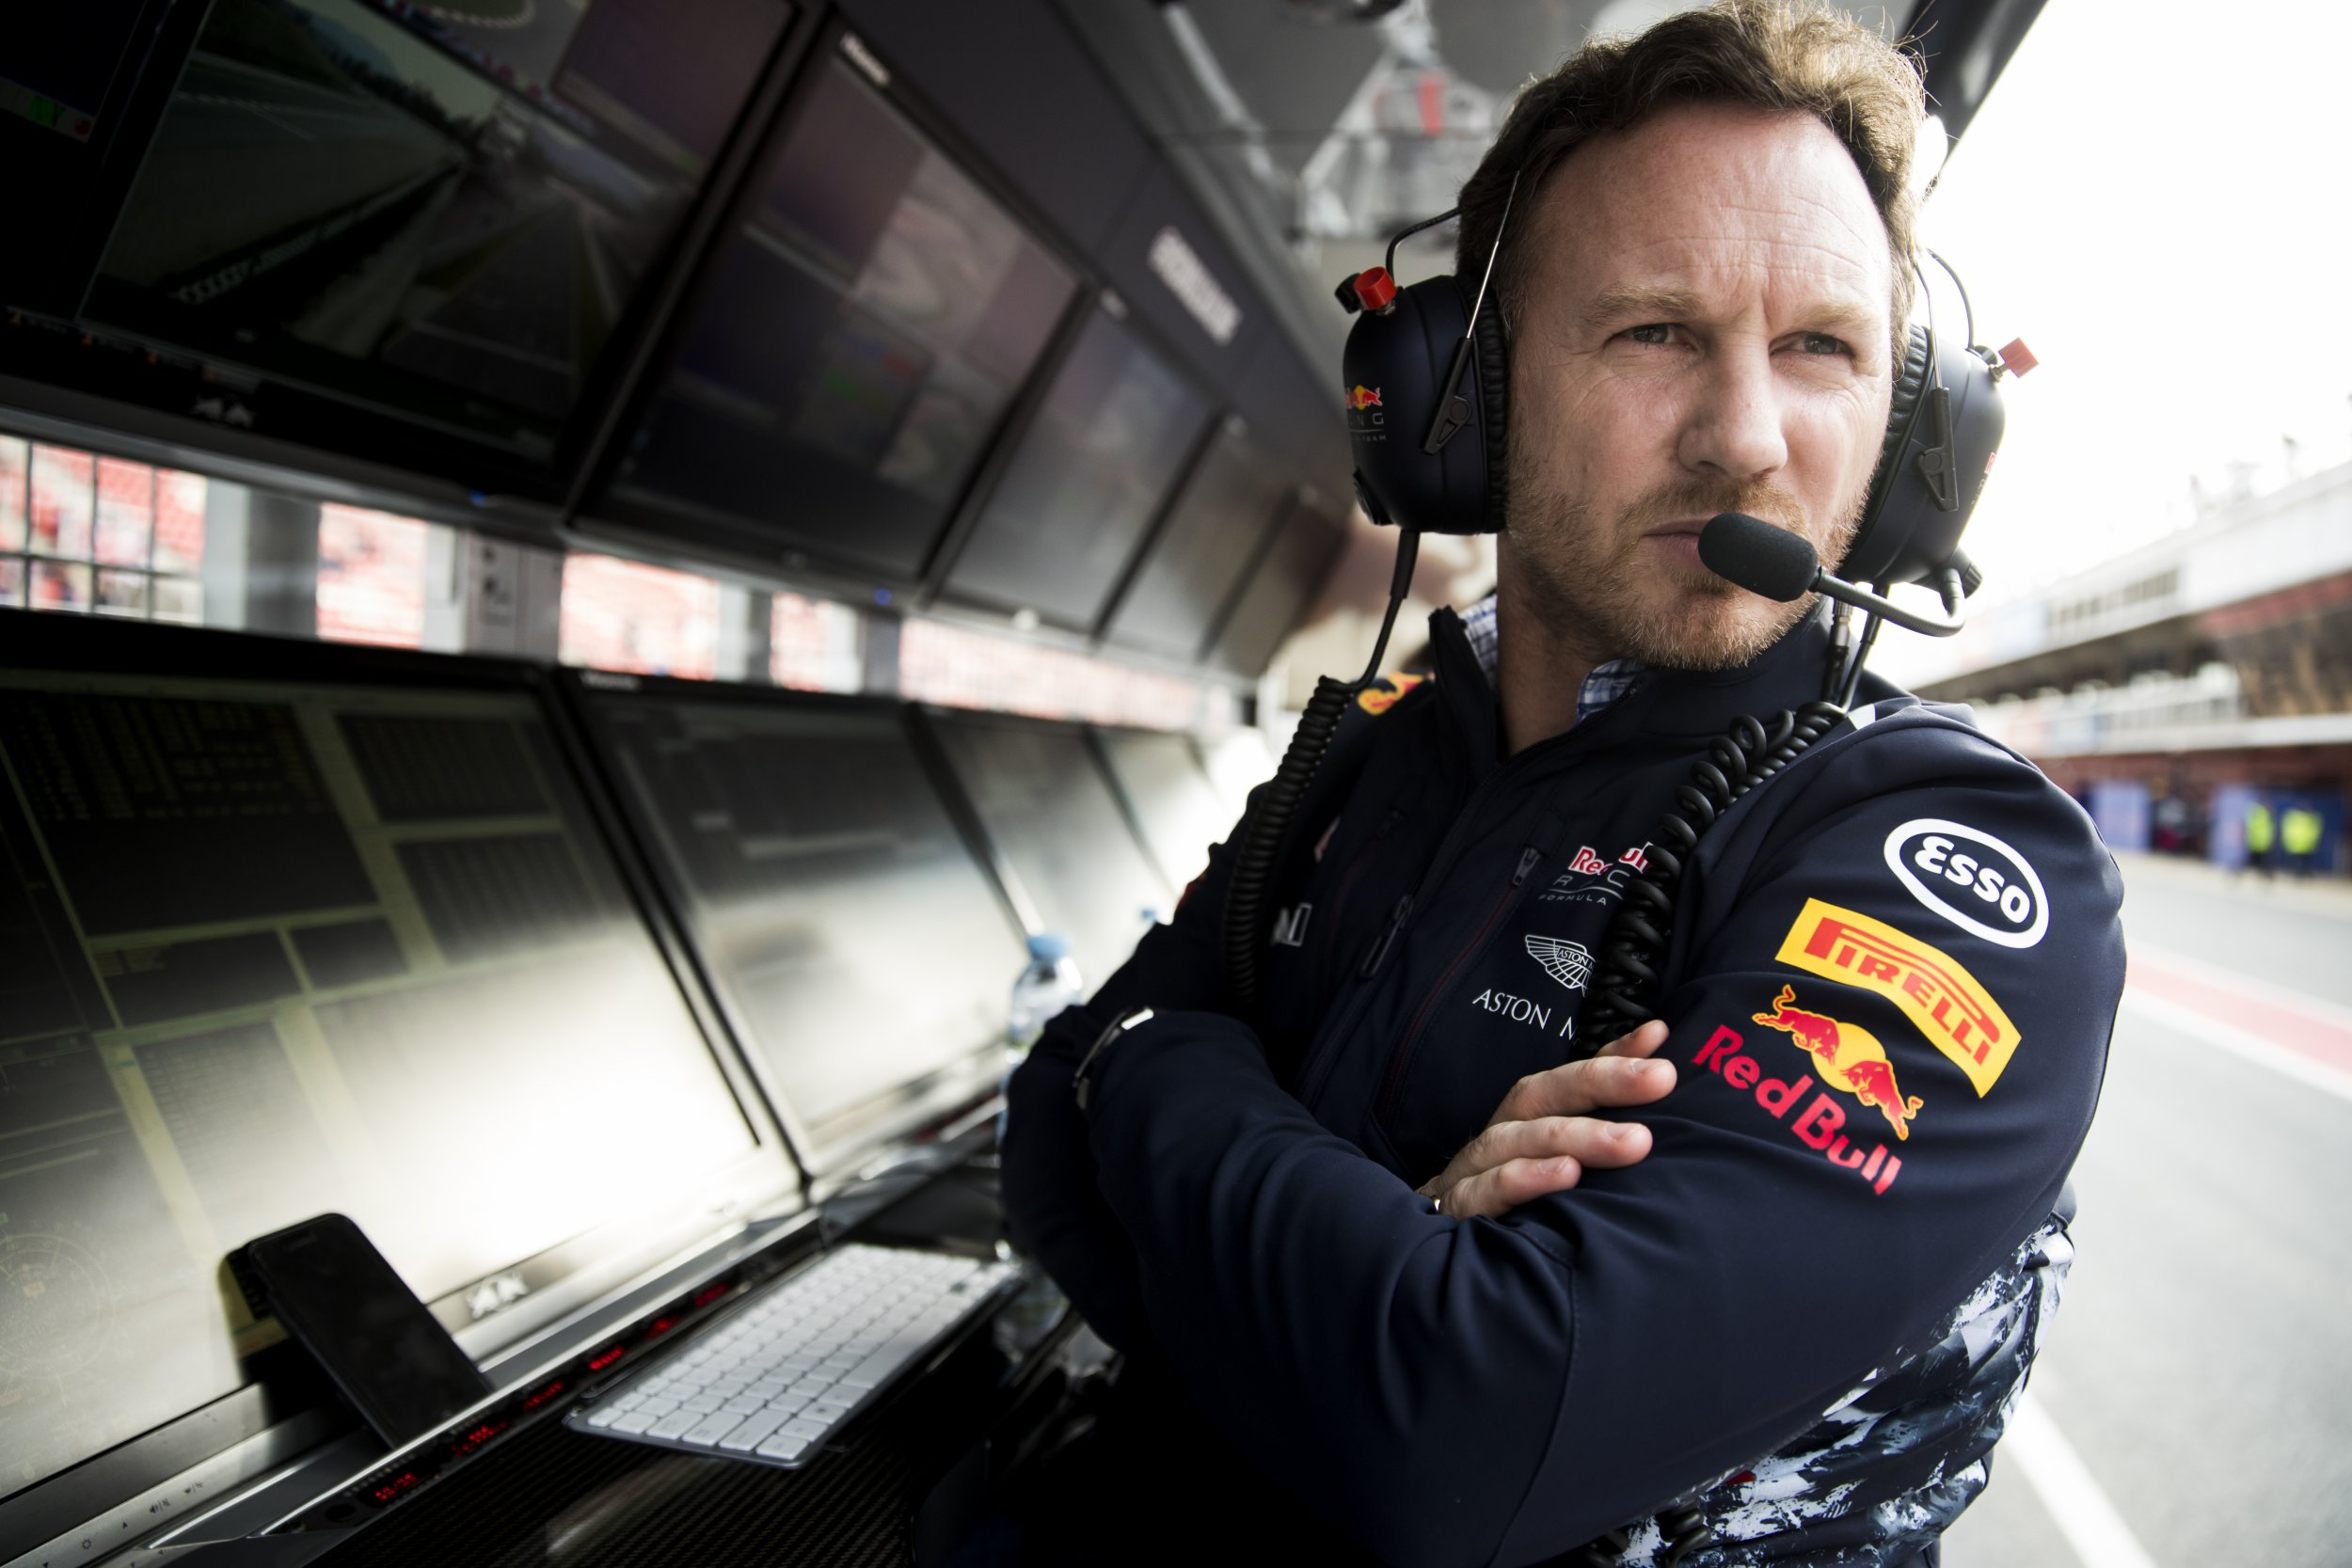 Formula One Exclusive: Christian Horner on Racer Rivalry and His Quest to Return Red Bull to Former Glory